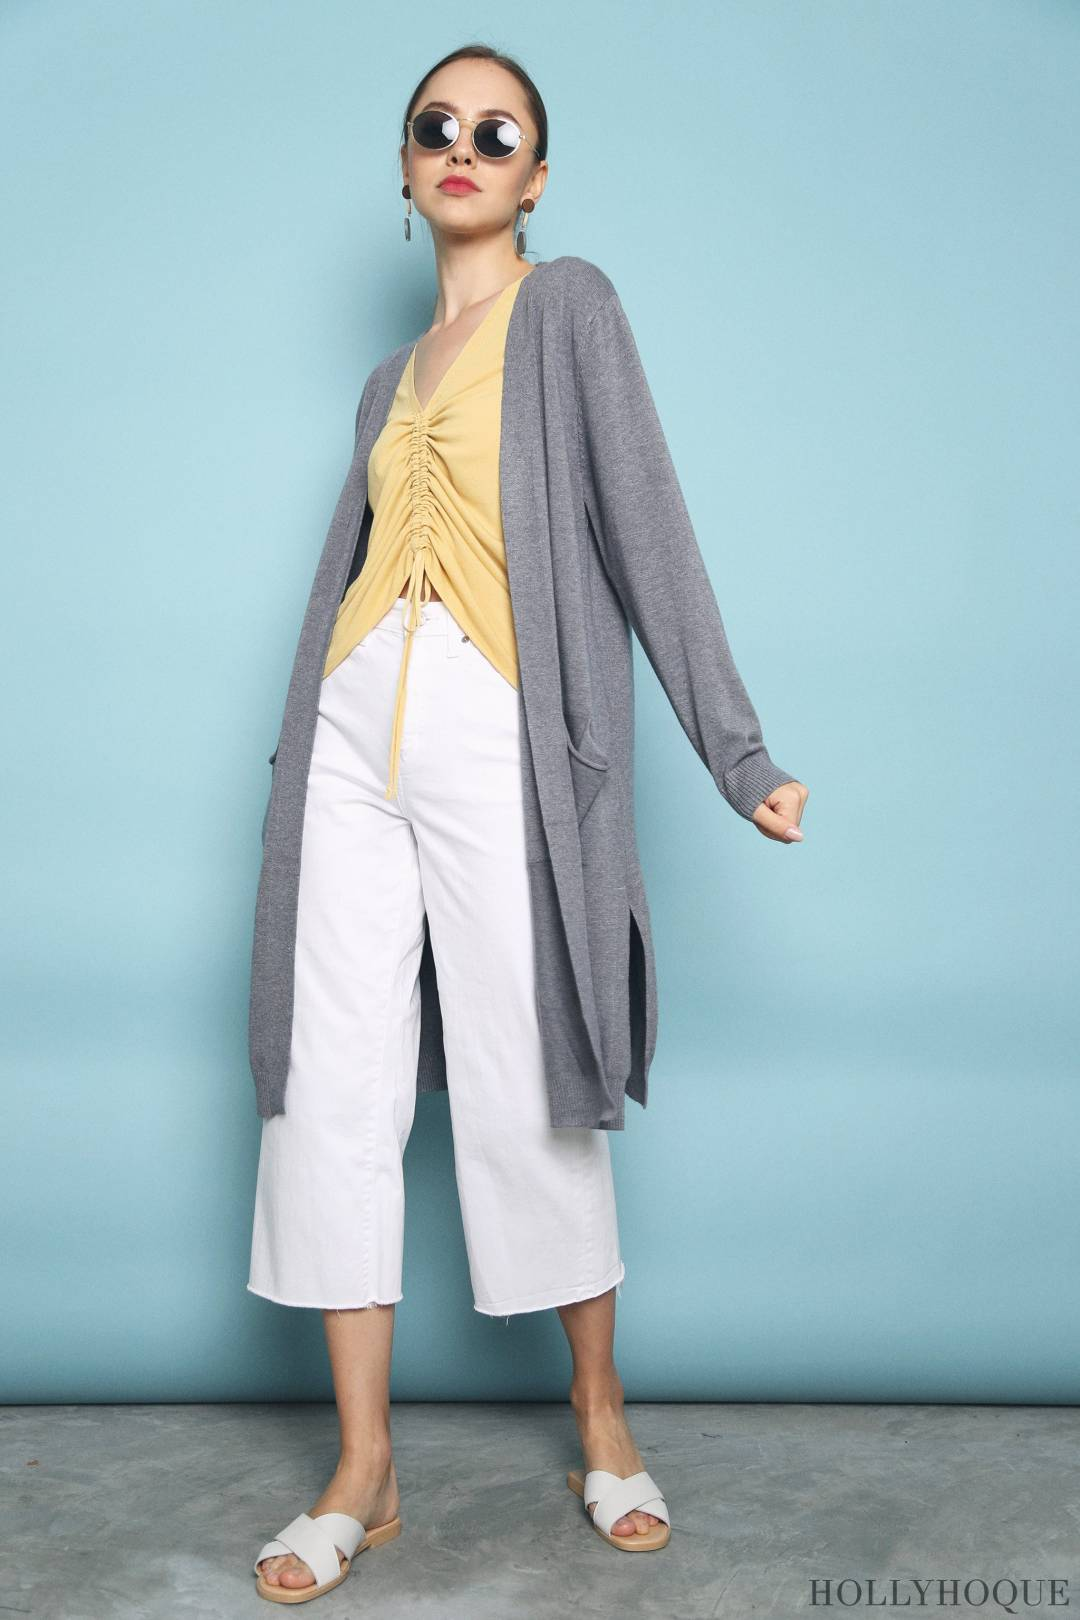 Scott Pocket Cardigan Grey (Restock)